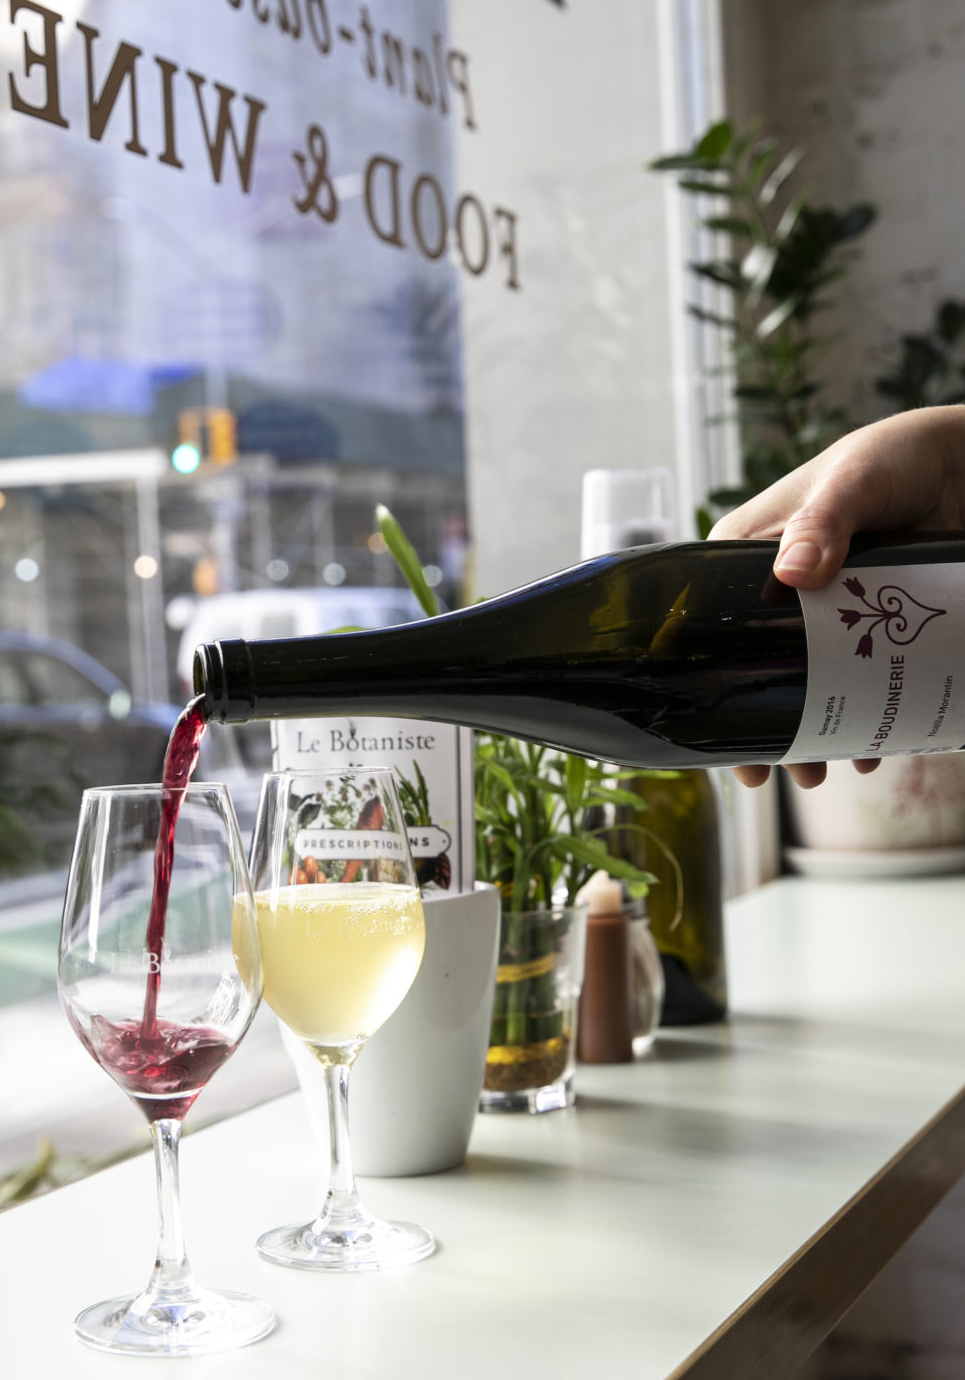 a hand pours a glass of red wine next to a glass of white wine in the window of Le Botaniste